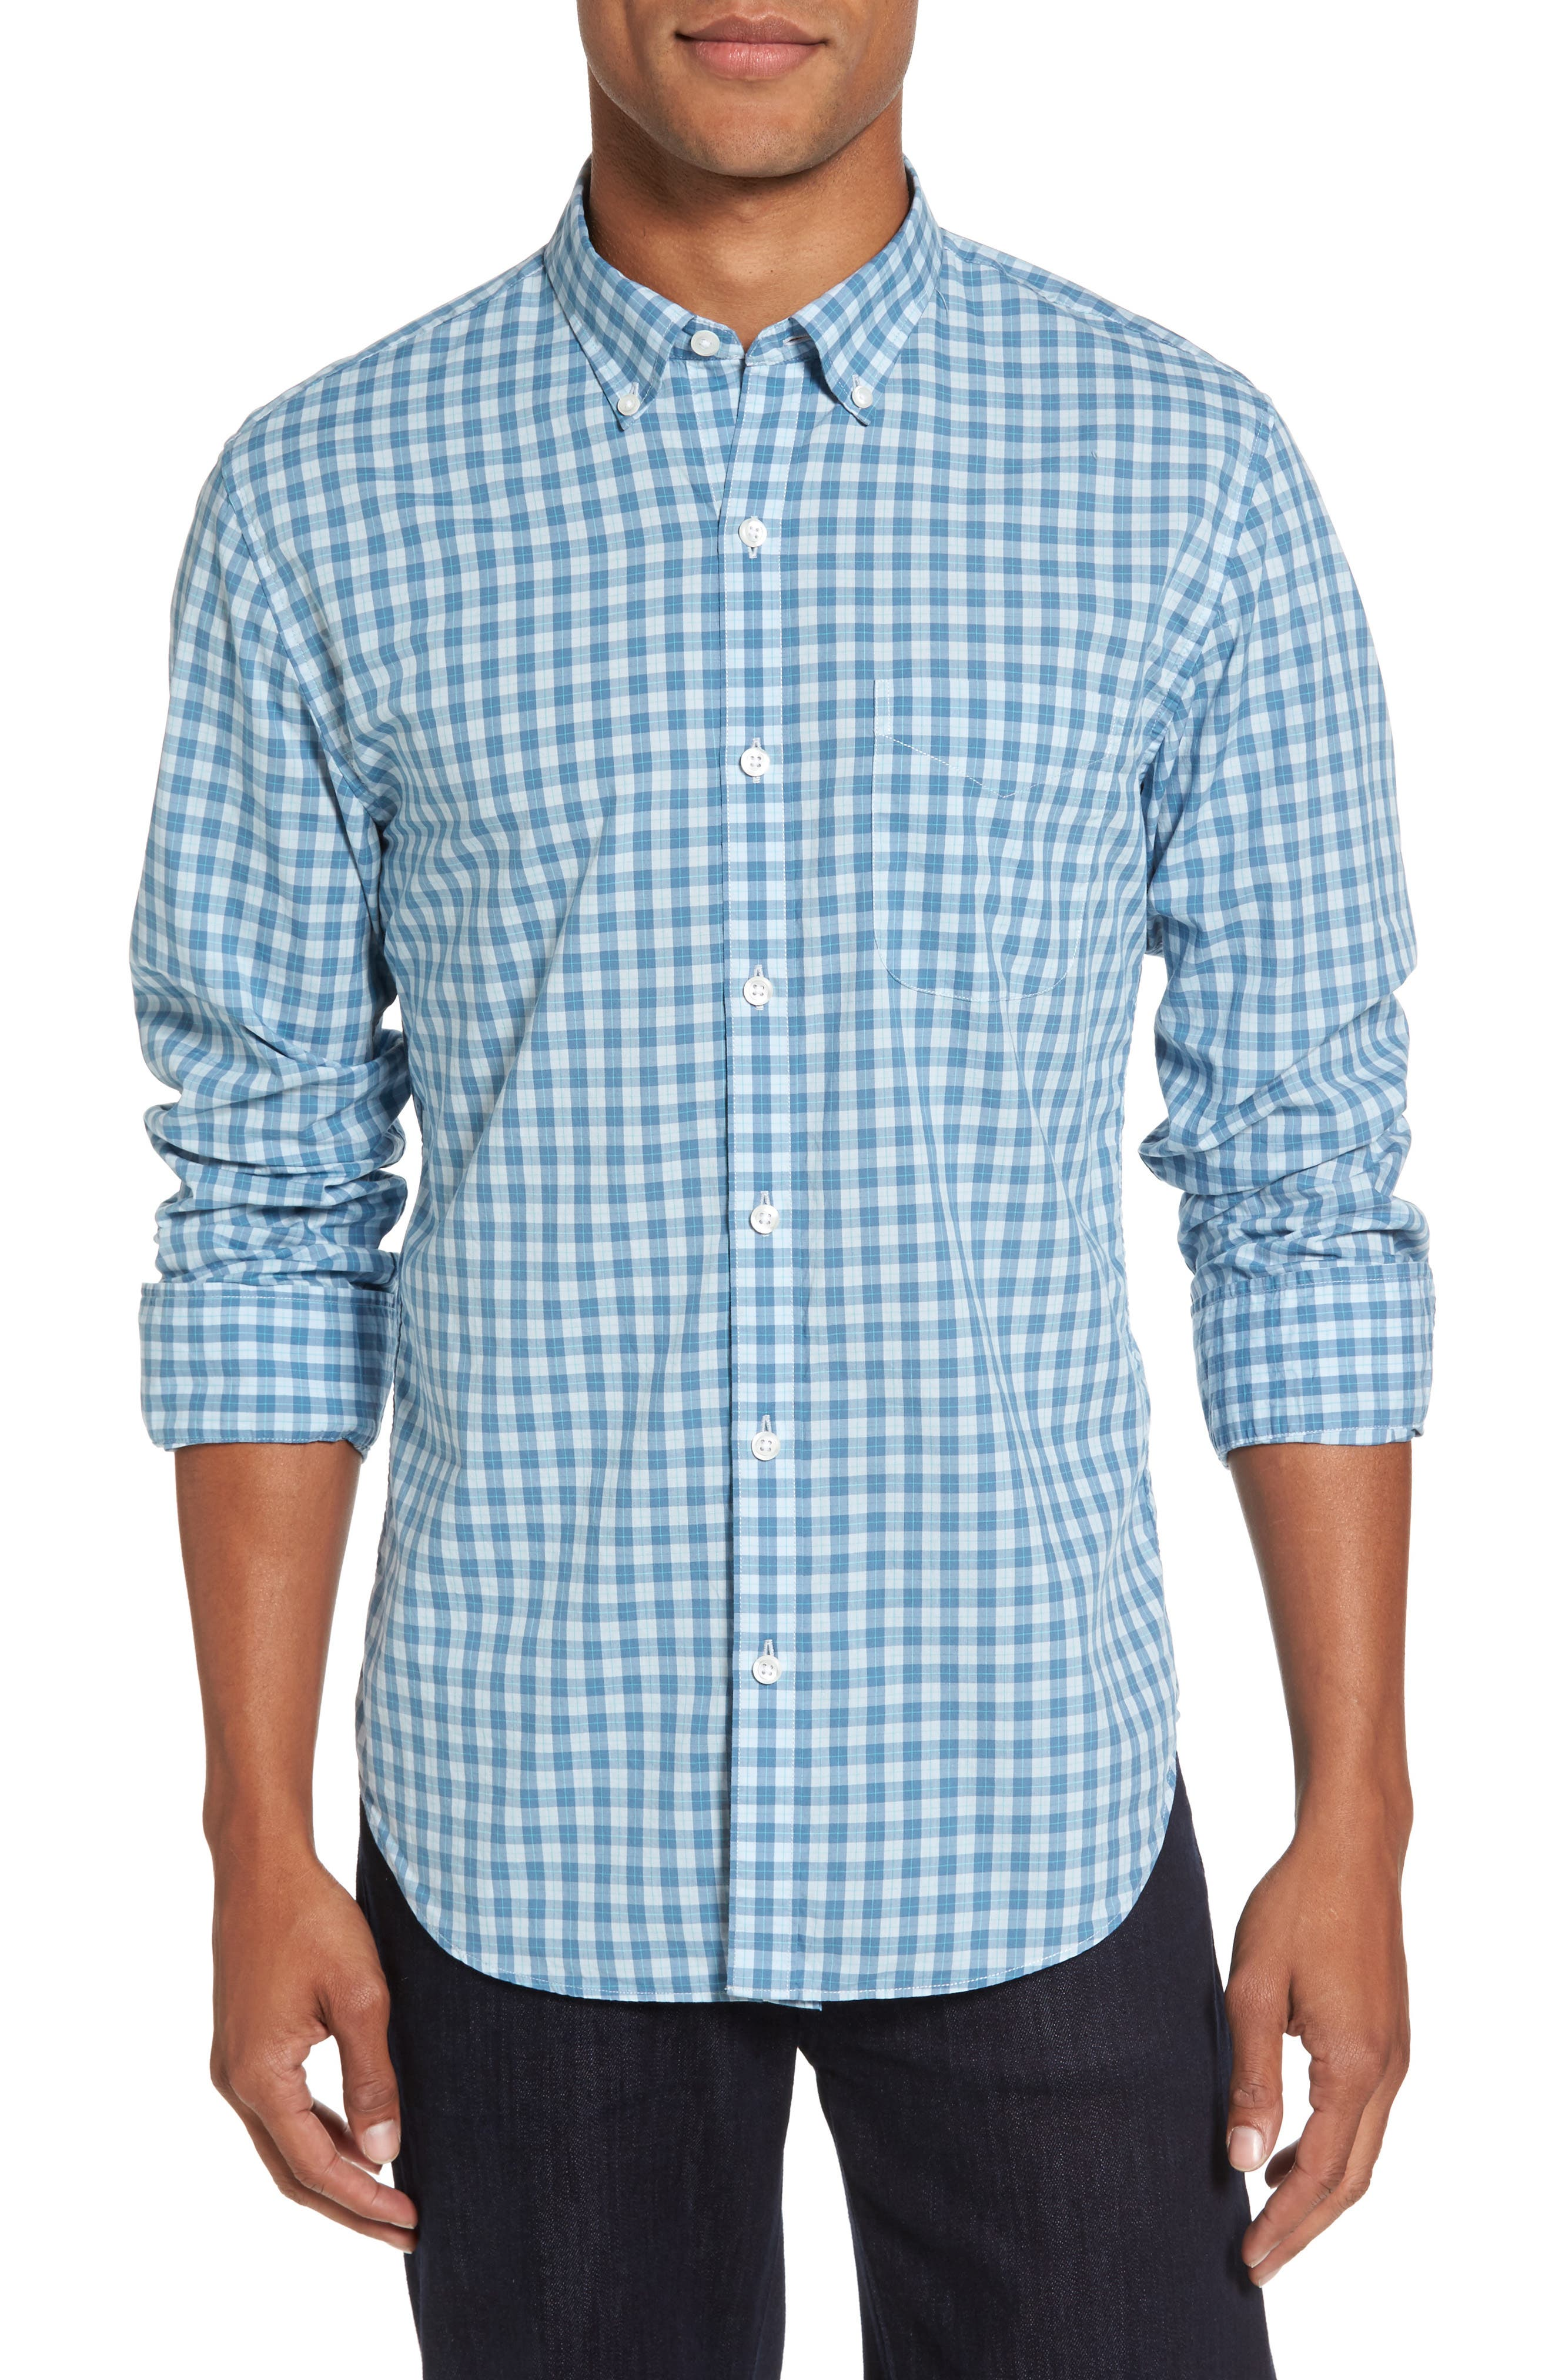 Alternate Image 1 Selected - Bonobos Summerweight Slim Fit Check Sport Shirt